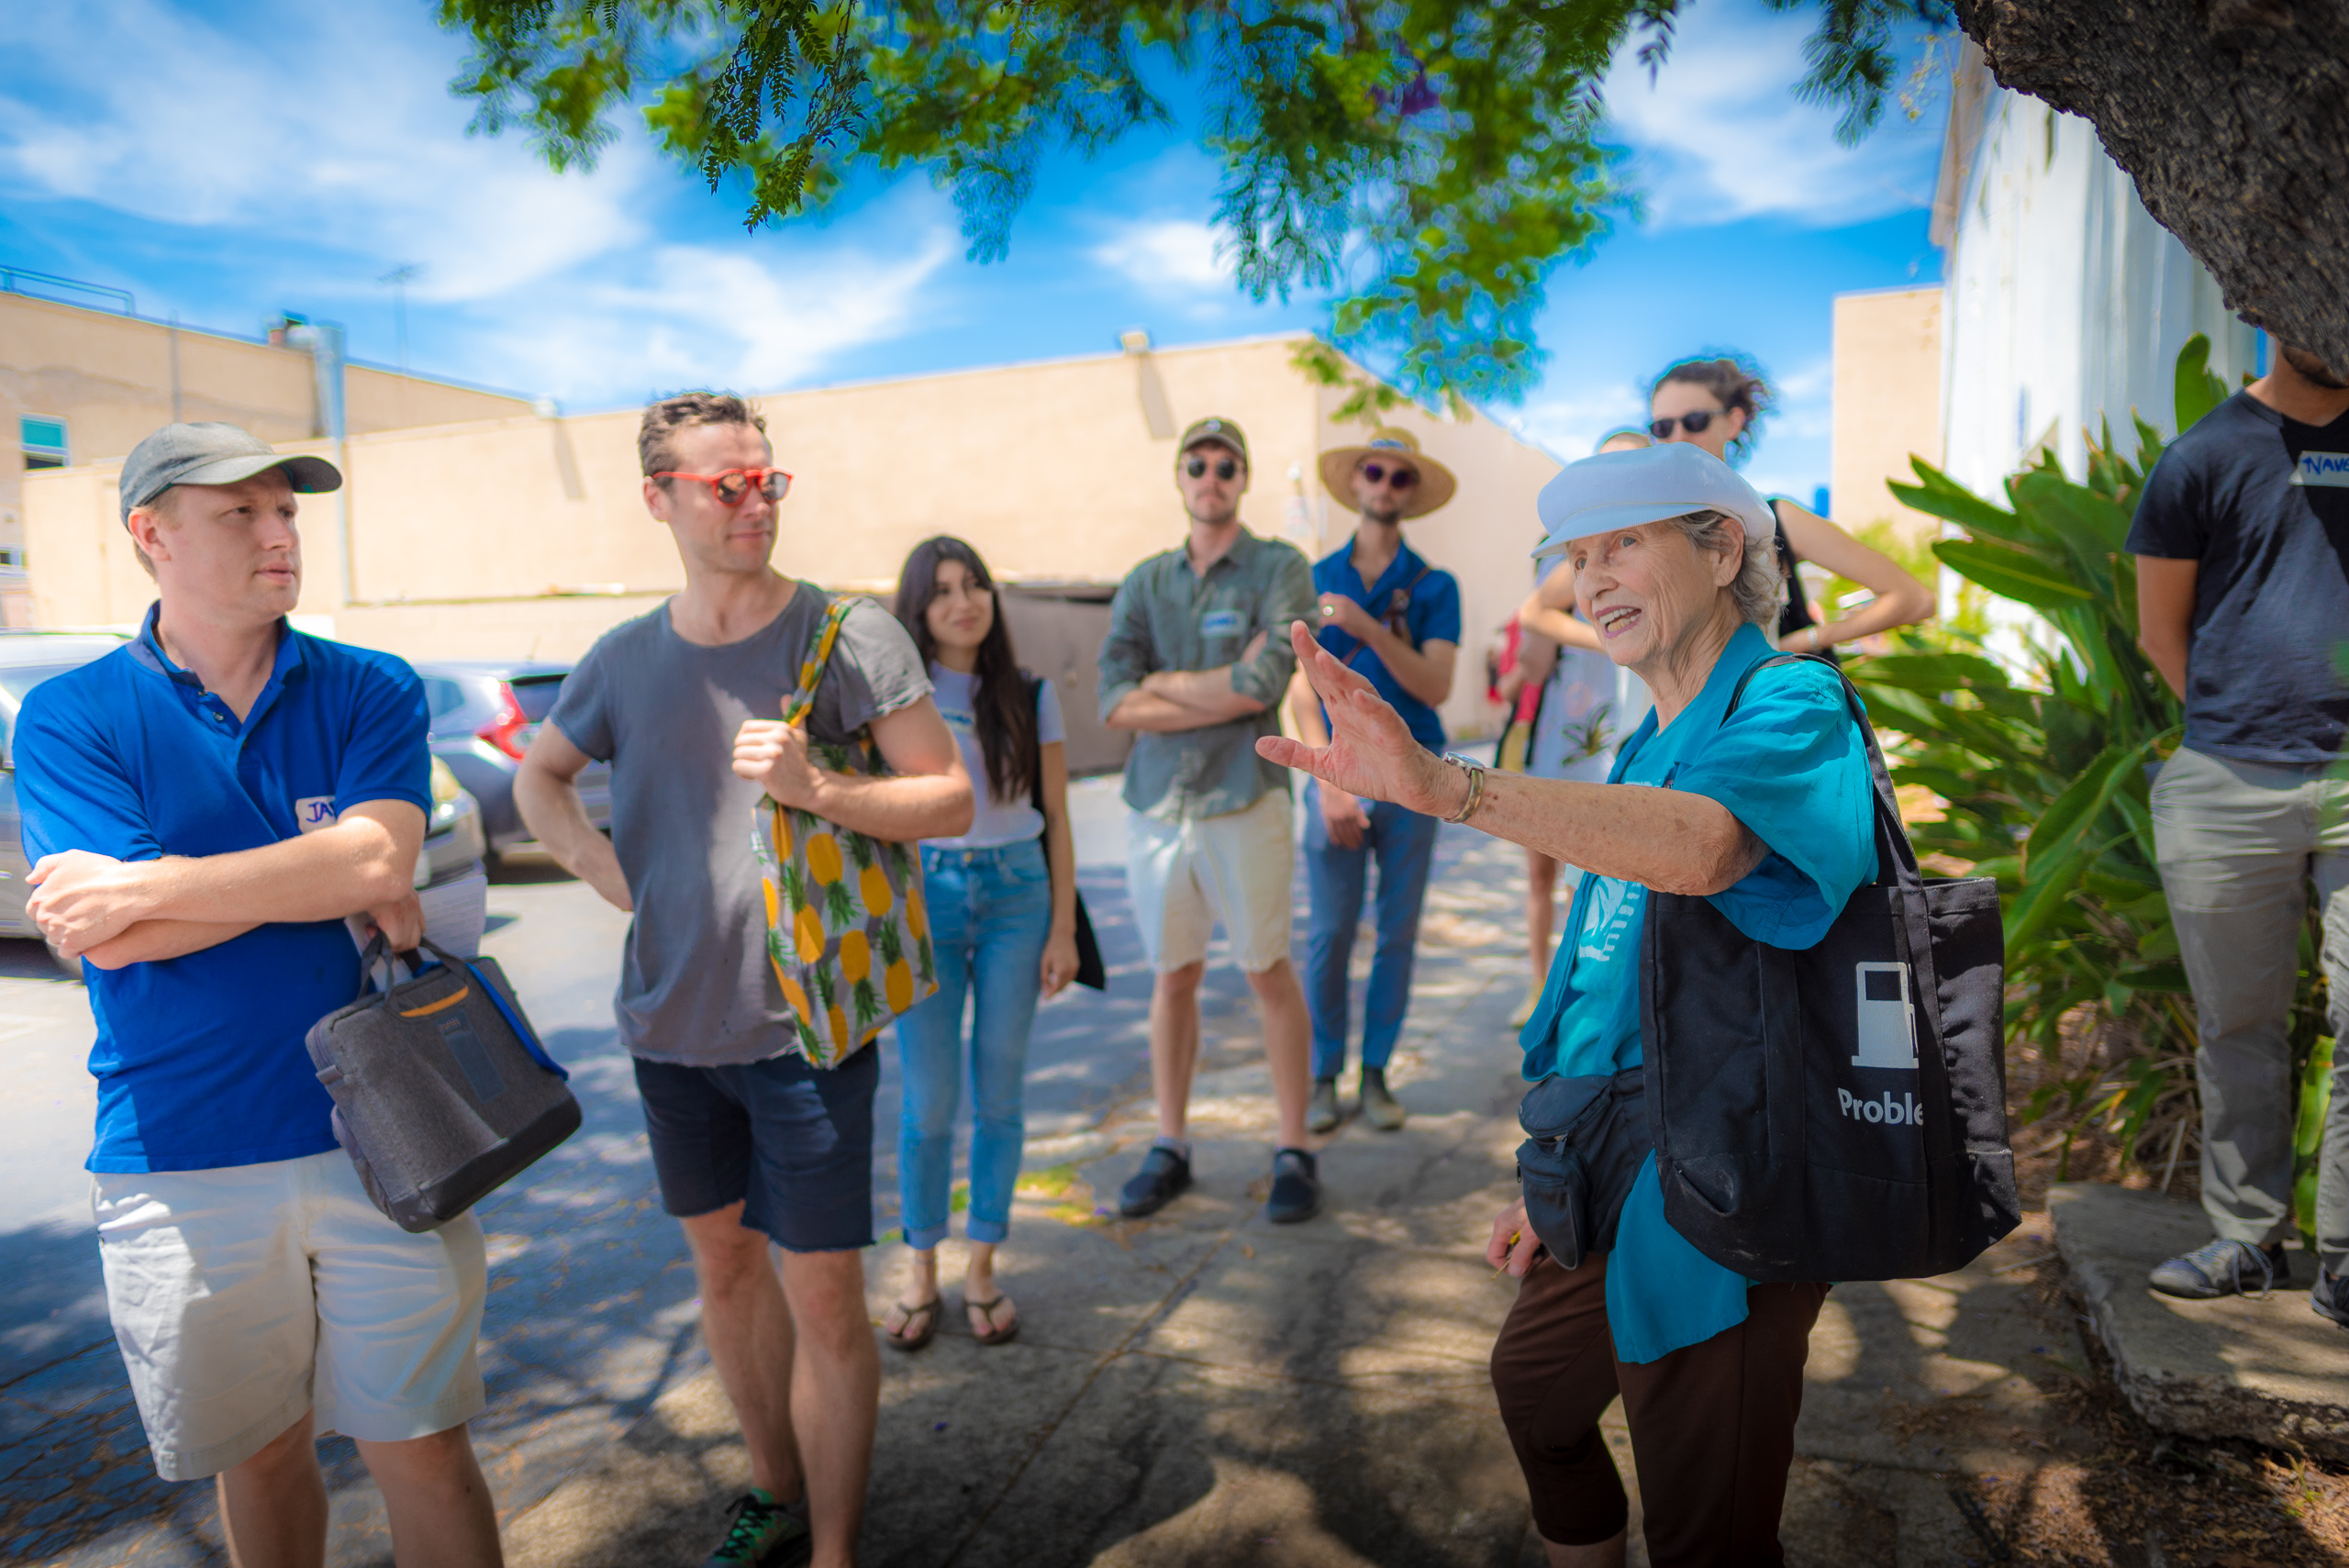 Learners from the Free School of Architecture (FSA 2018 Los Angeles) visit the Los Angeles Eco-Village and have a conversation with Executive Director Lois Arkin.